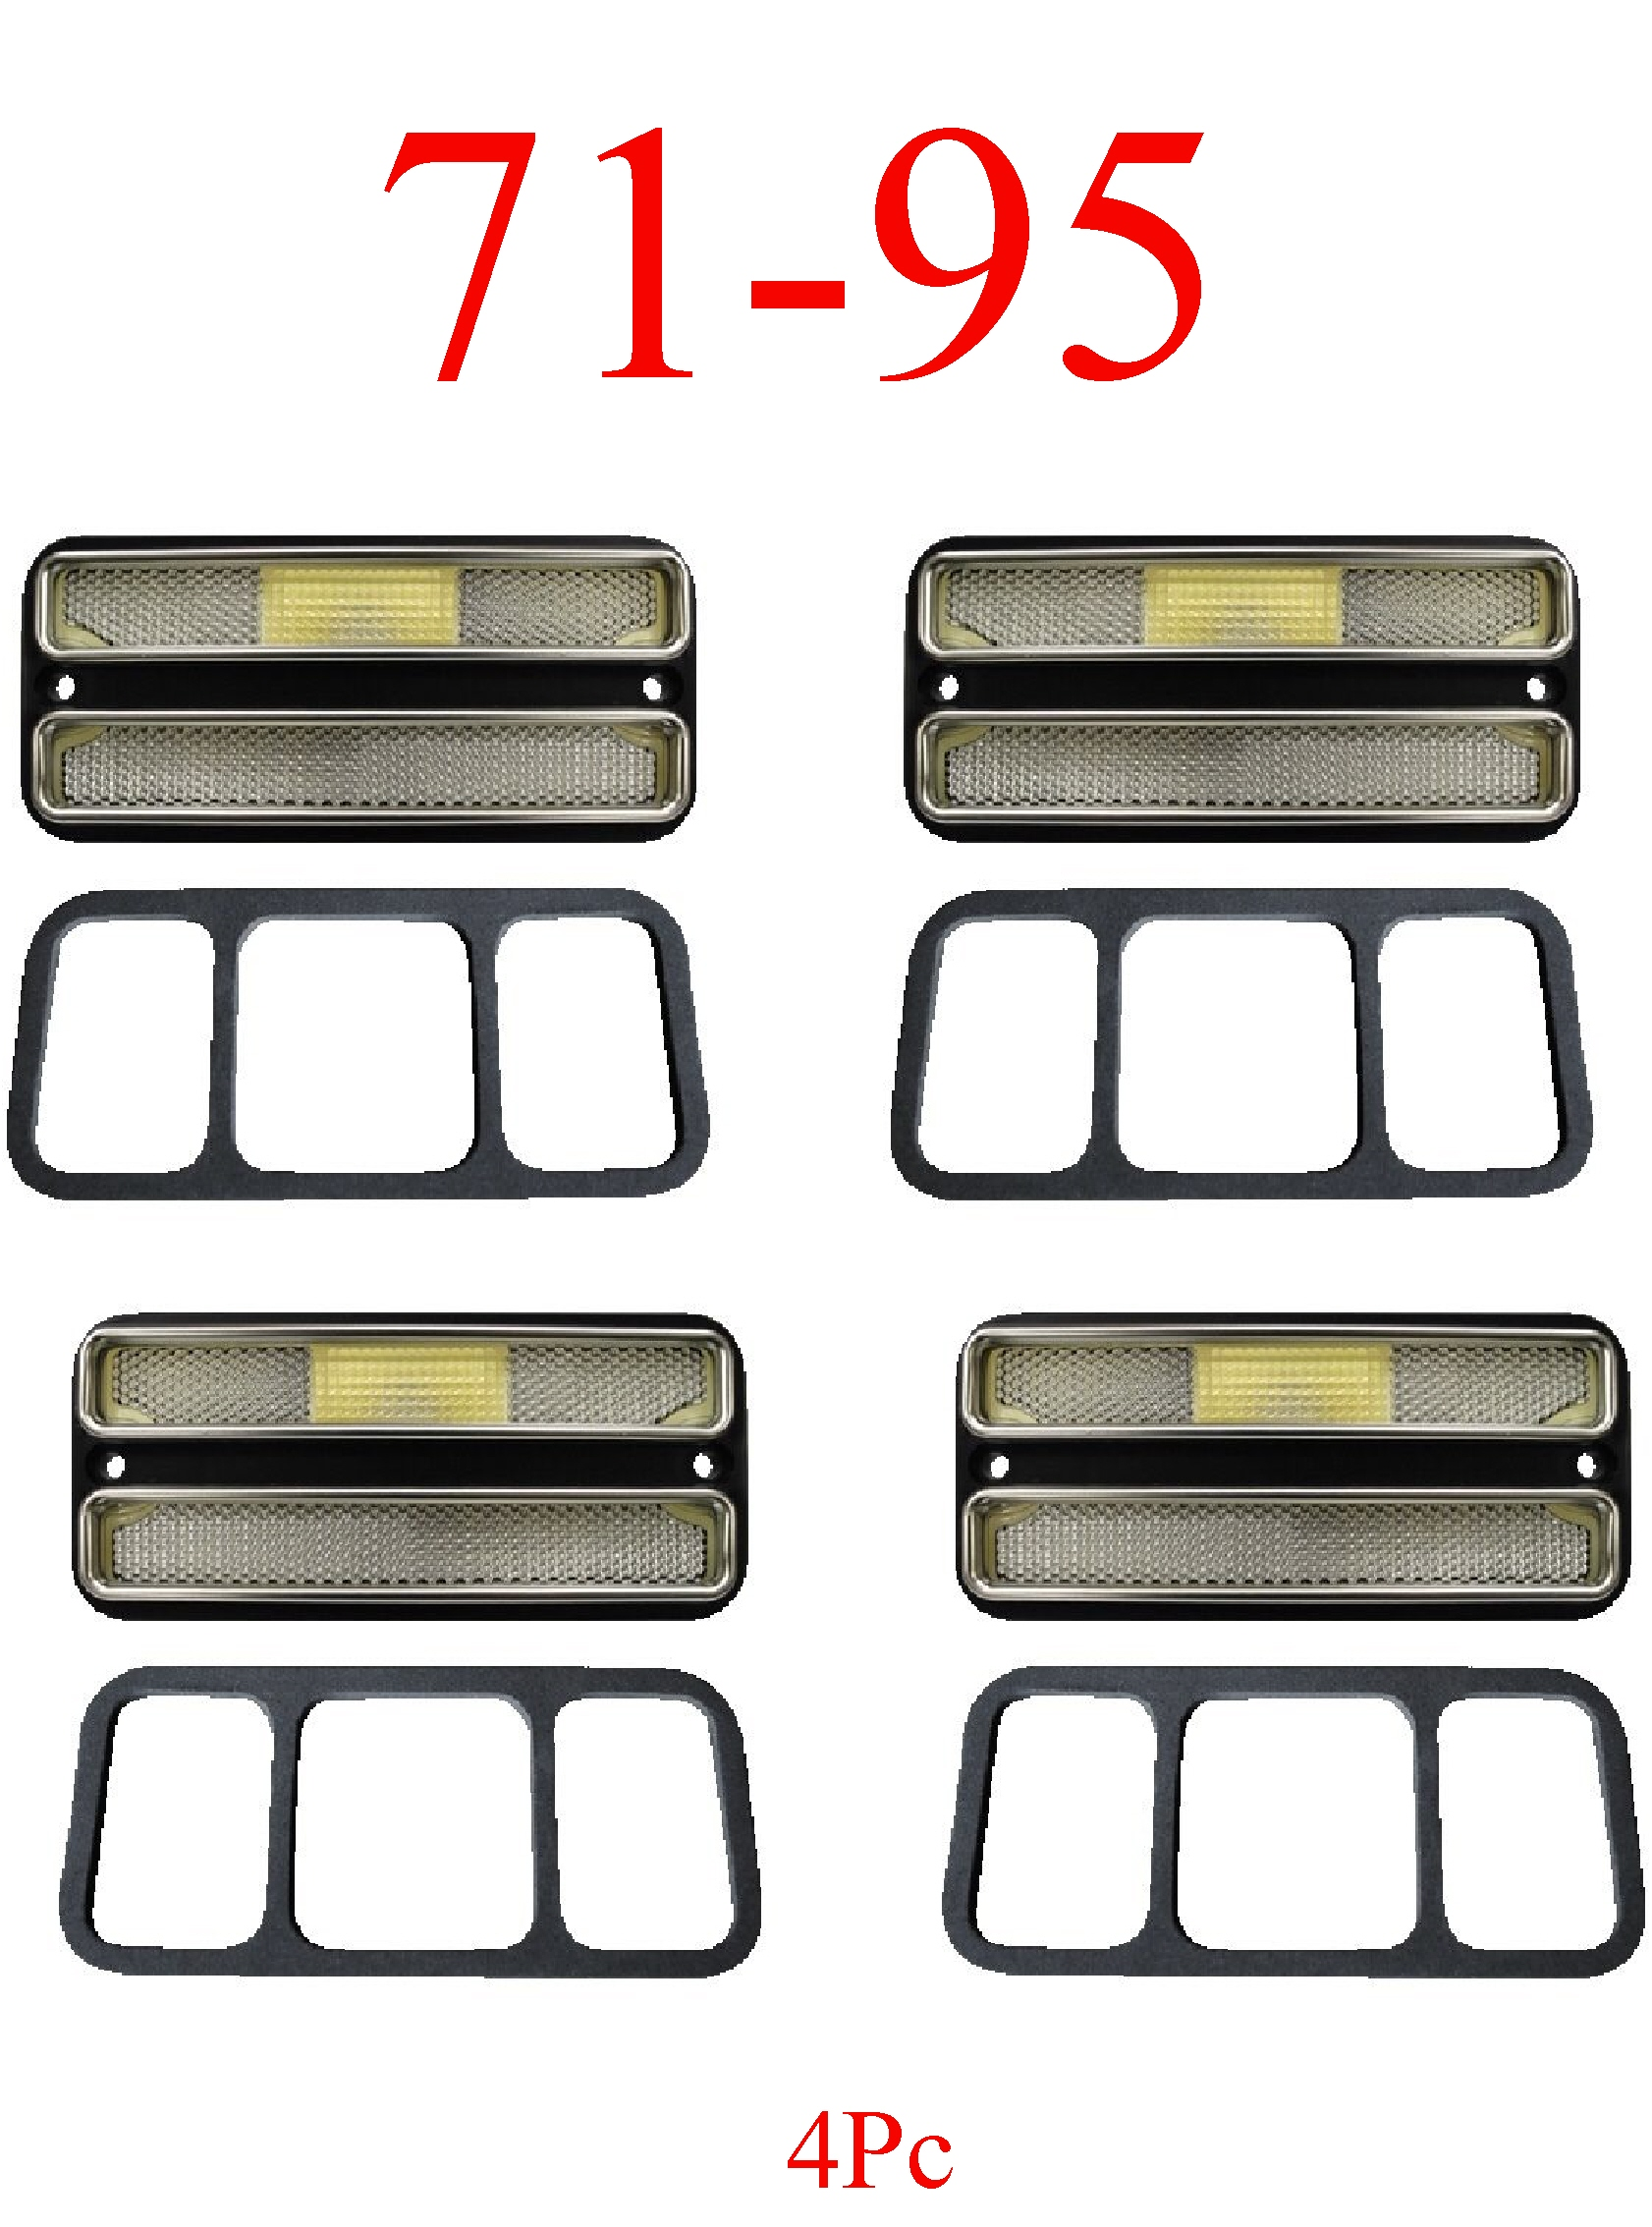 71-95 Chevy Van 4Pc Deluxe Clear Side Lights Front & Rear